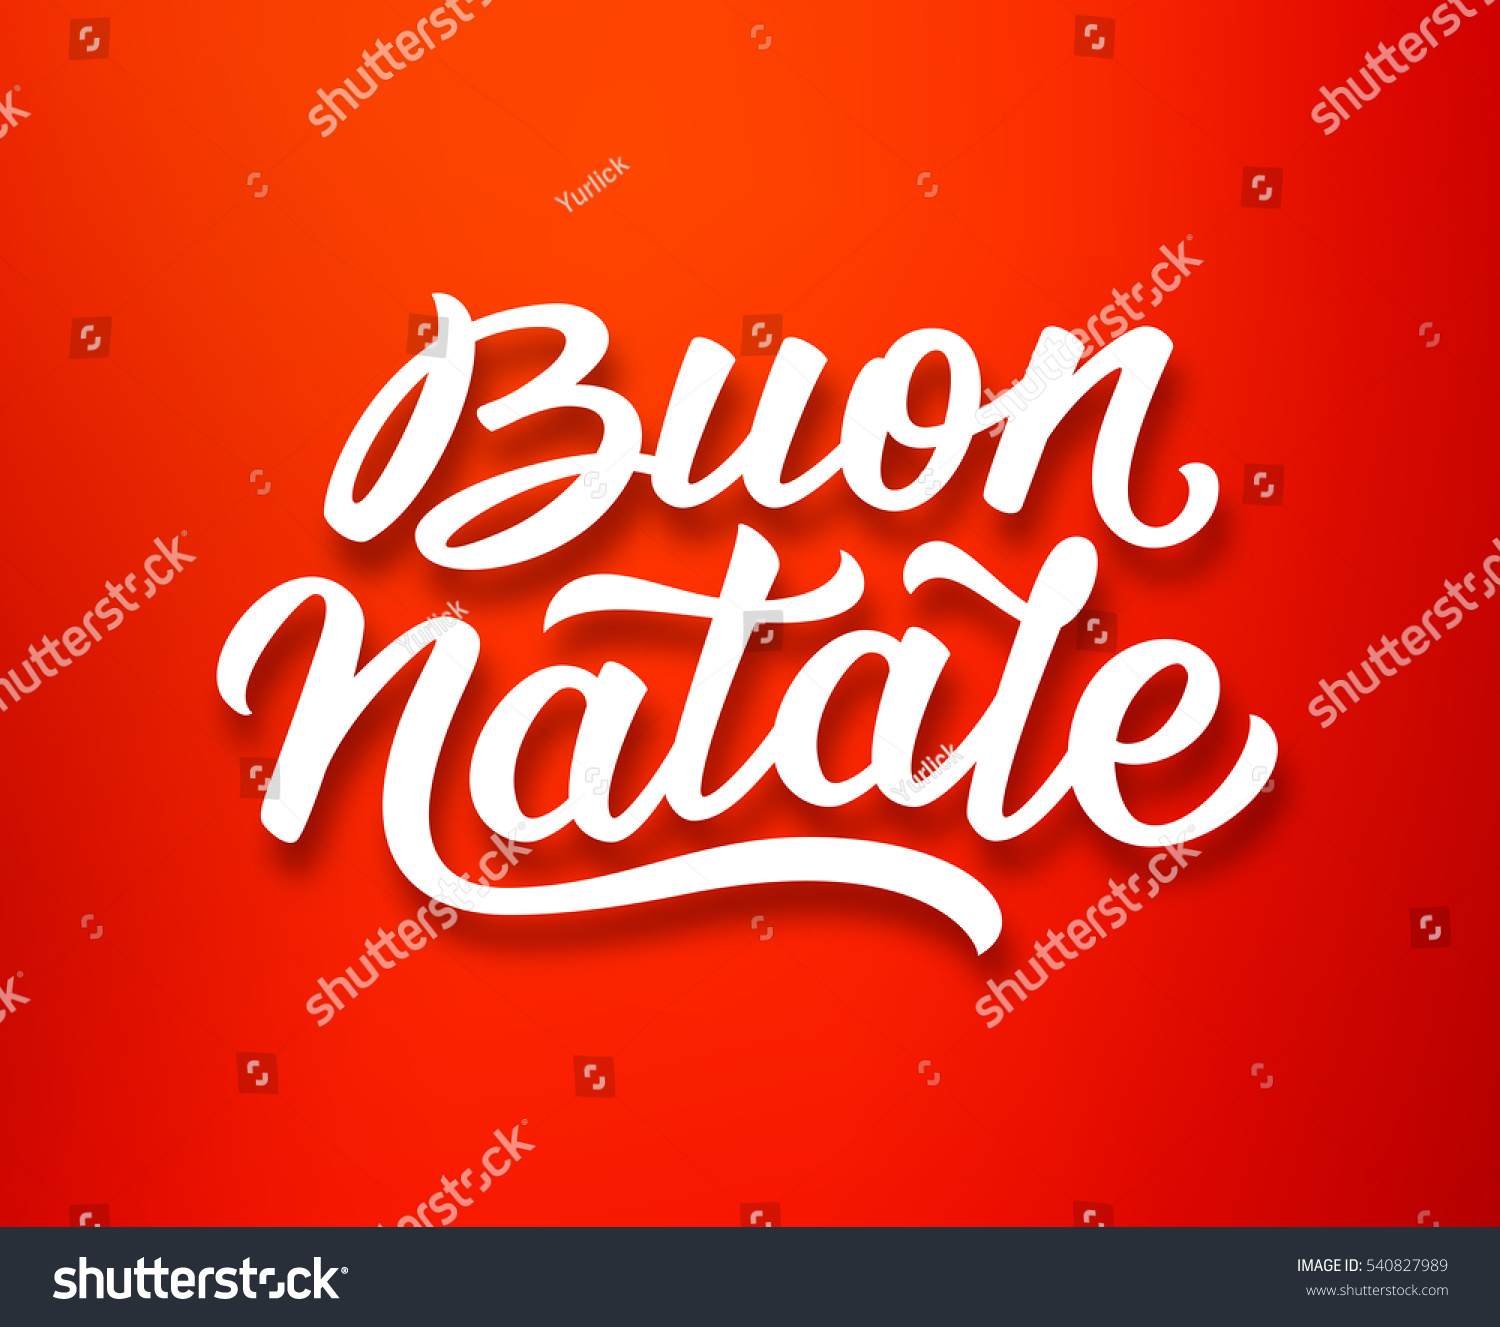 Merry Christmas Season Greetings With Lettering Text In Italian On